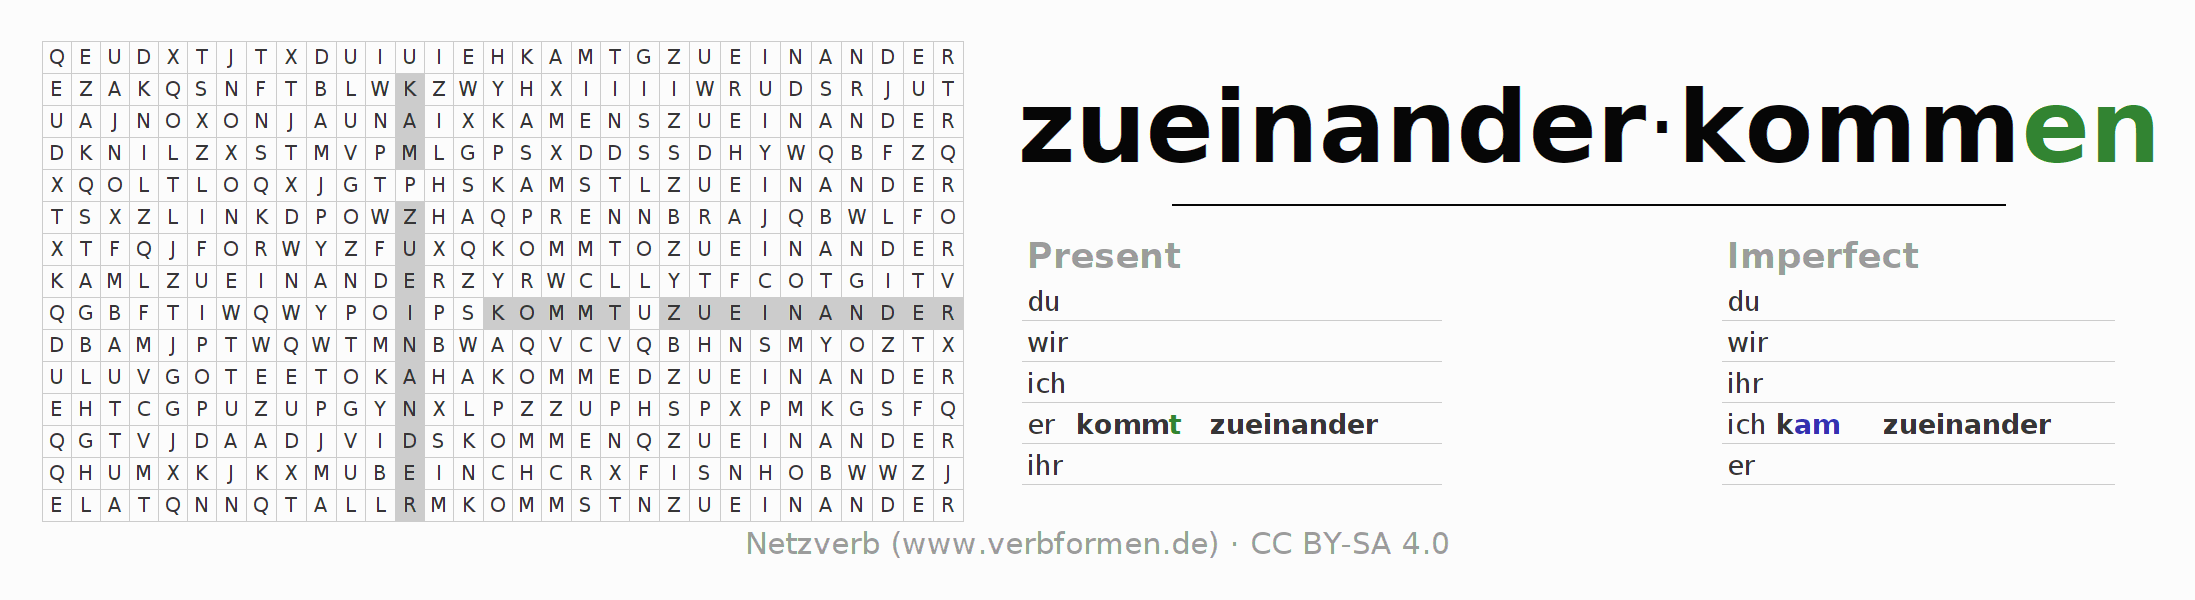 Word search puzzle for the conjugation of the verb zueinanderkommen